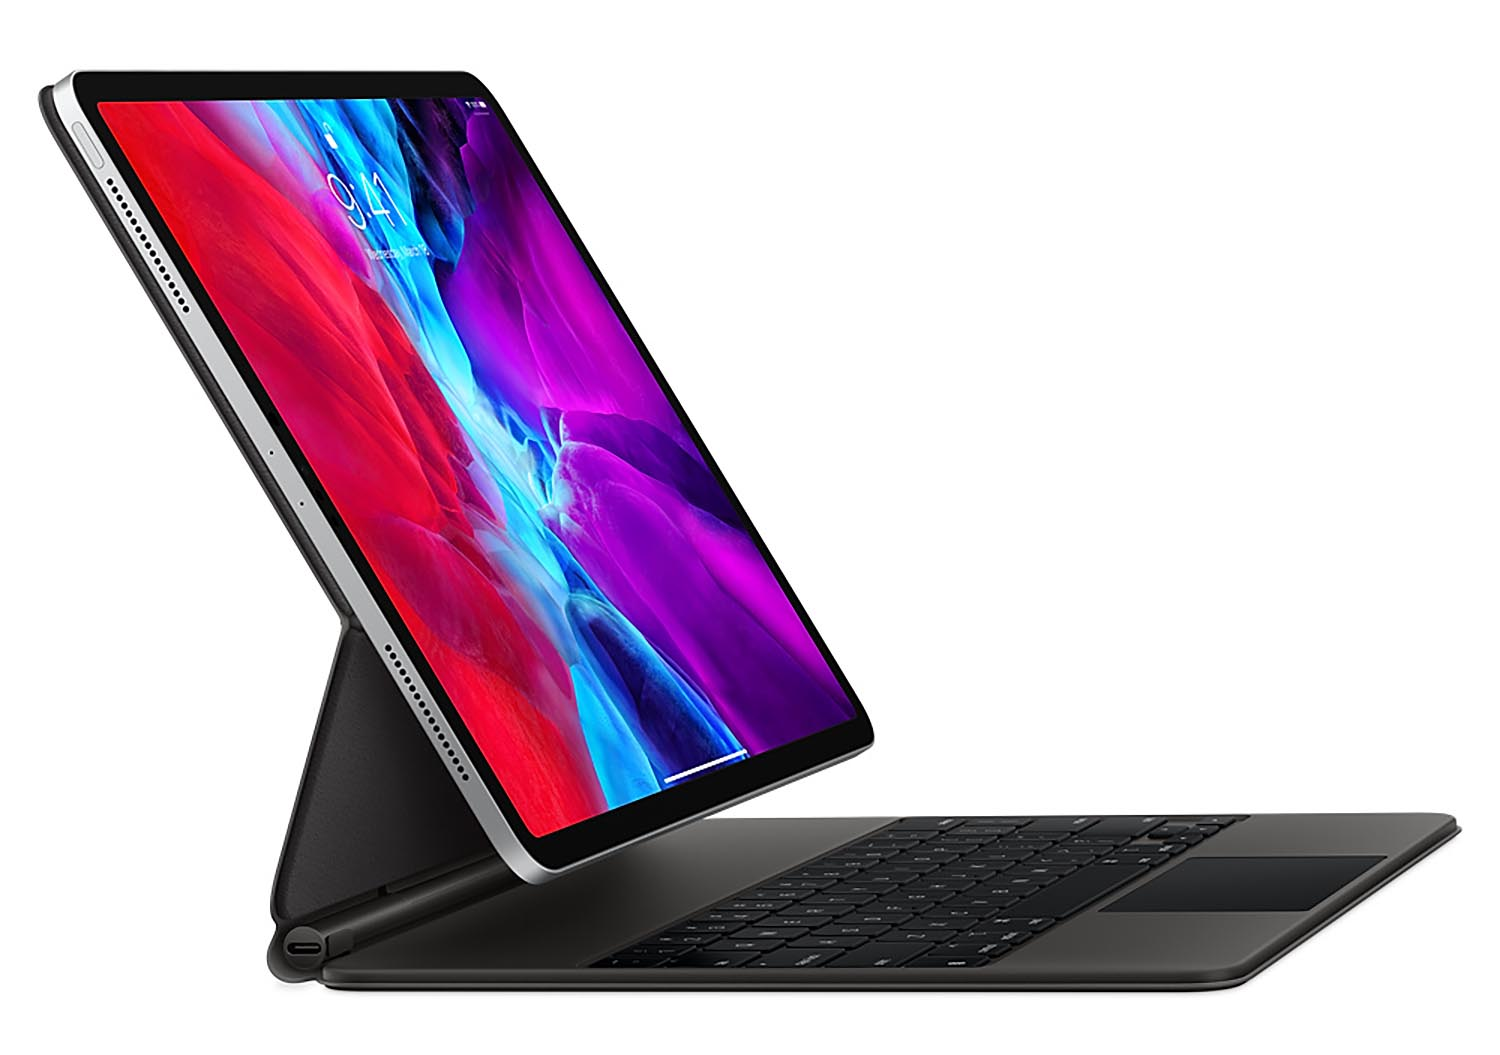 Owners of the Magic Keyboard for iPad Pro have complained about problems with fast battery drain